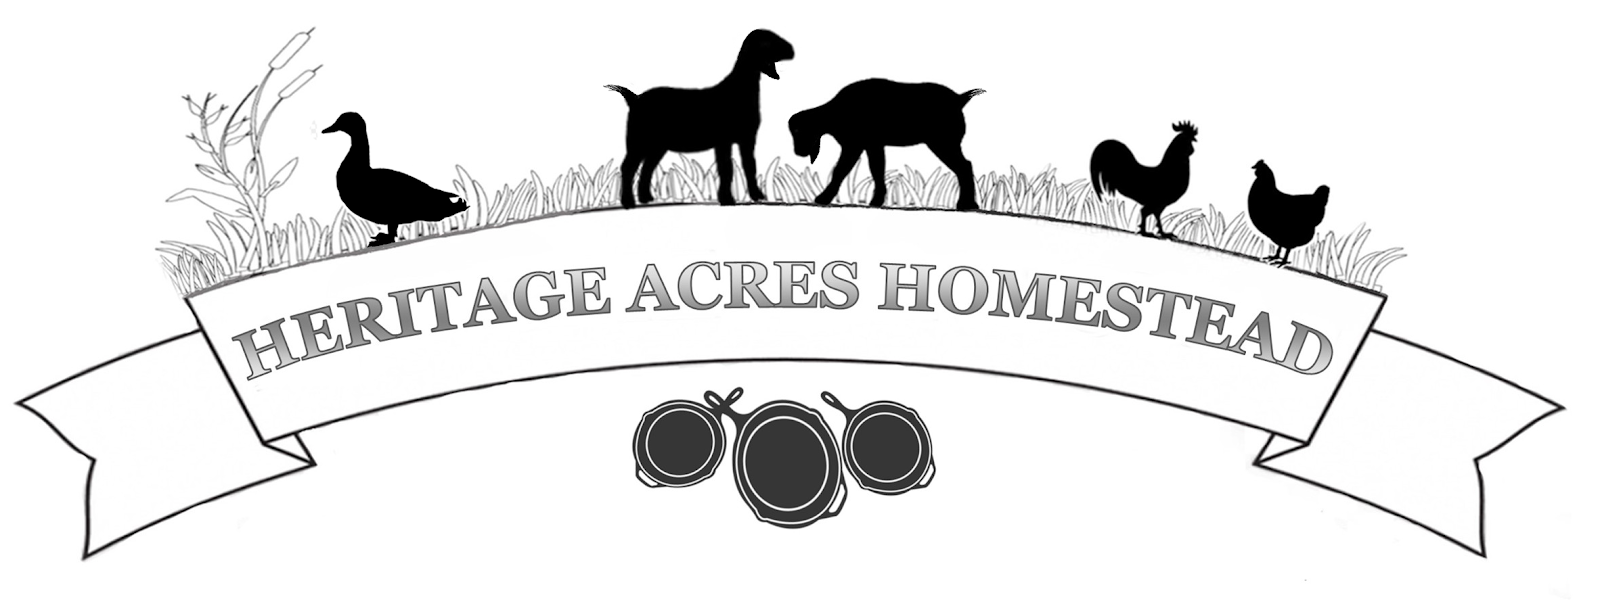 Heritage Acres Homestead